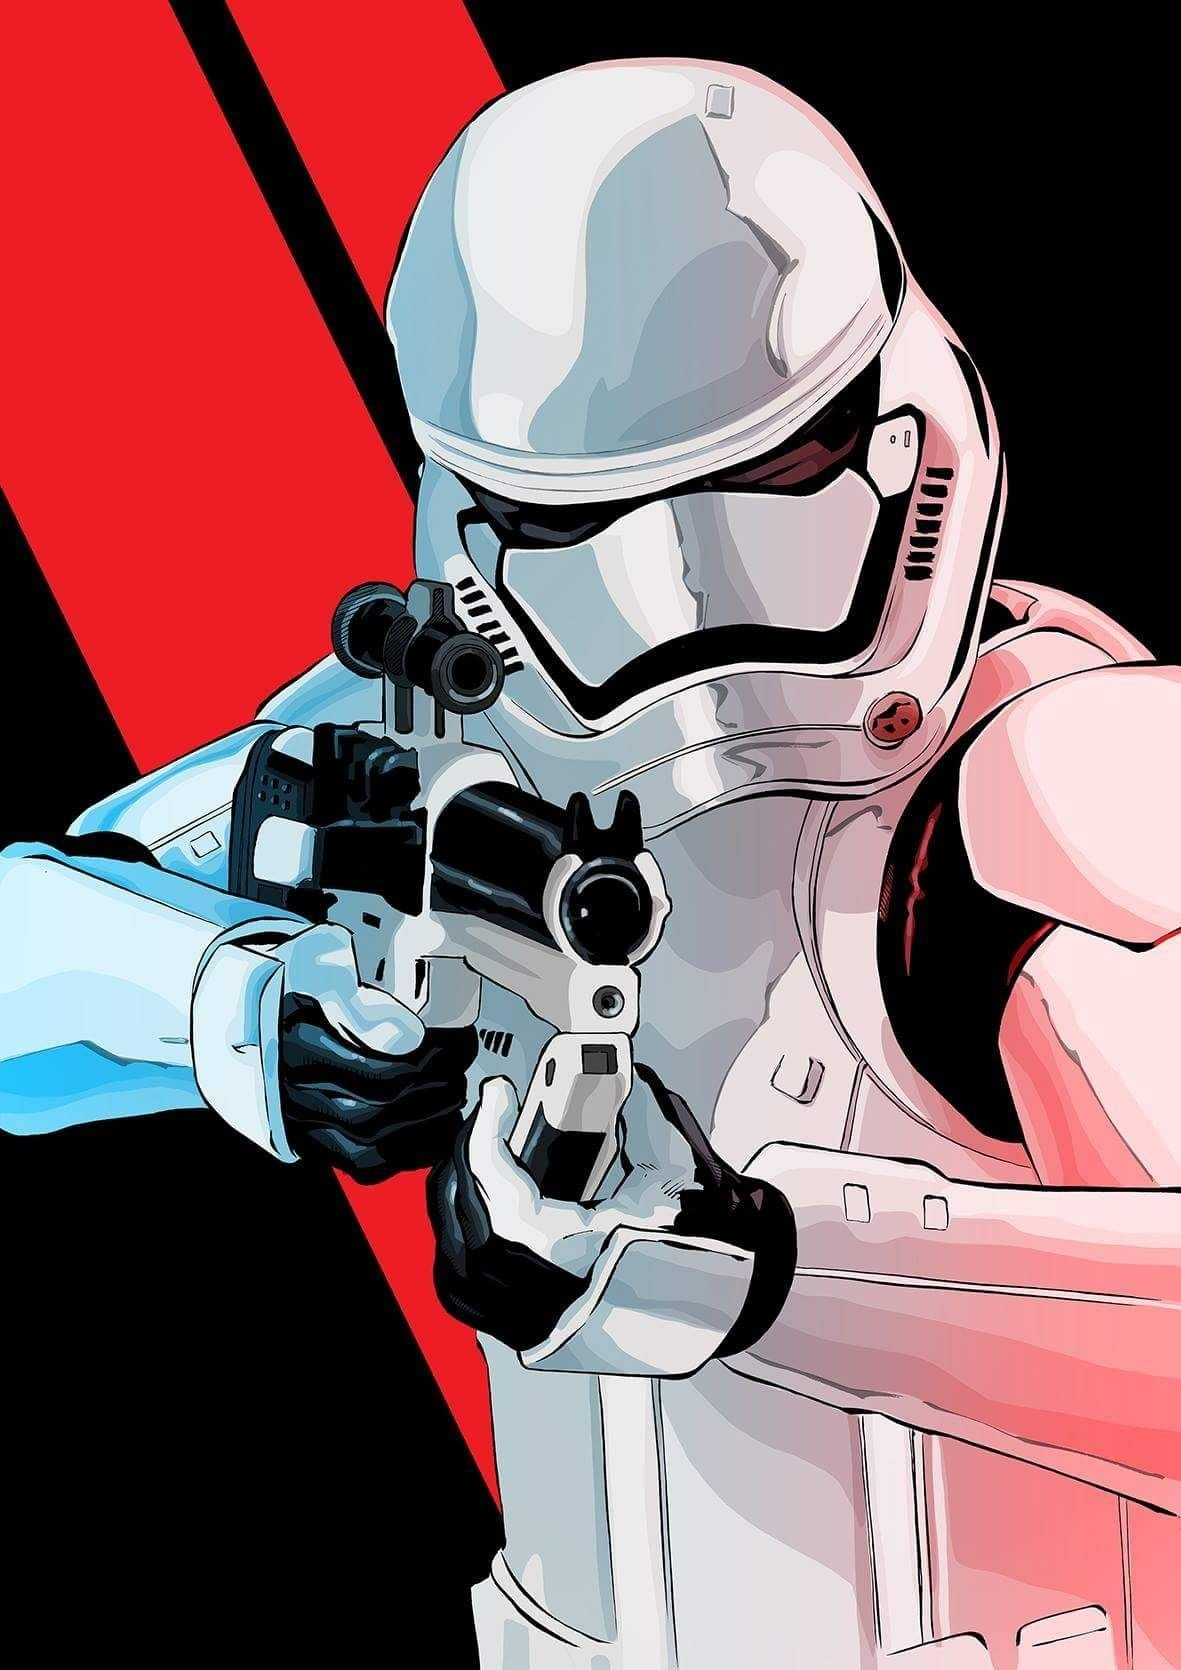 Star Wars First Order Stormtrooper Star wars poster